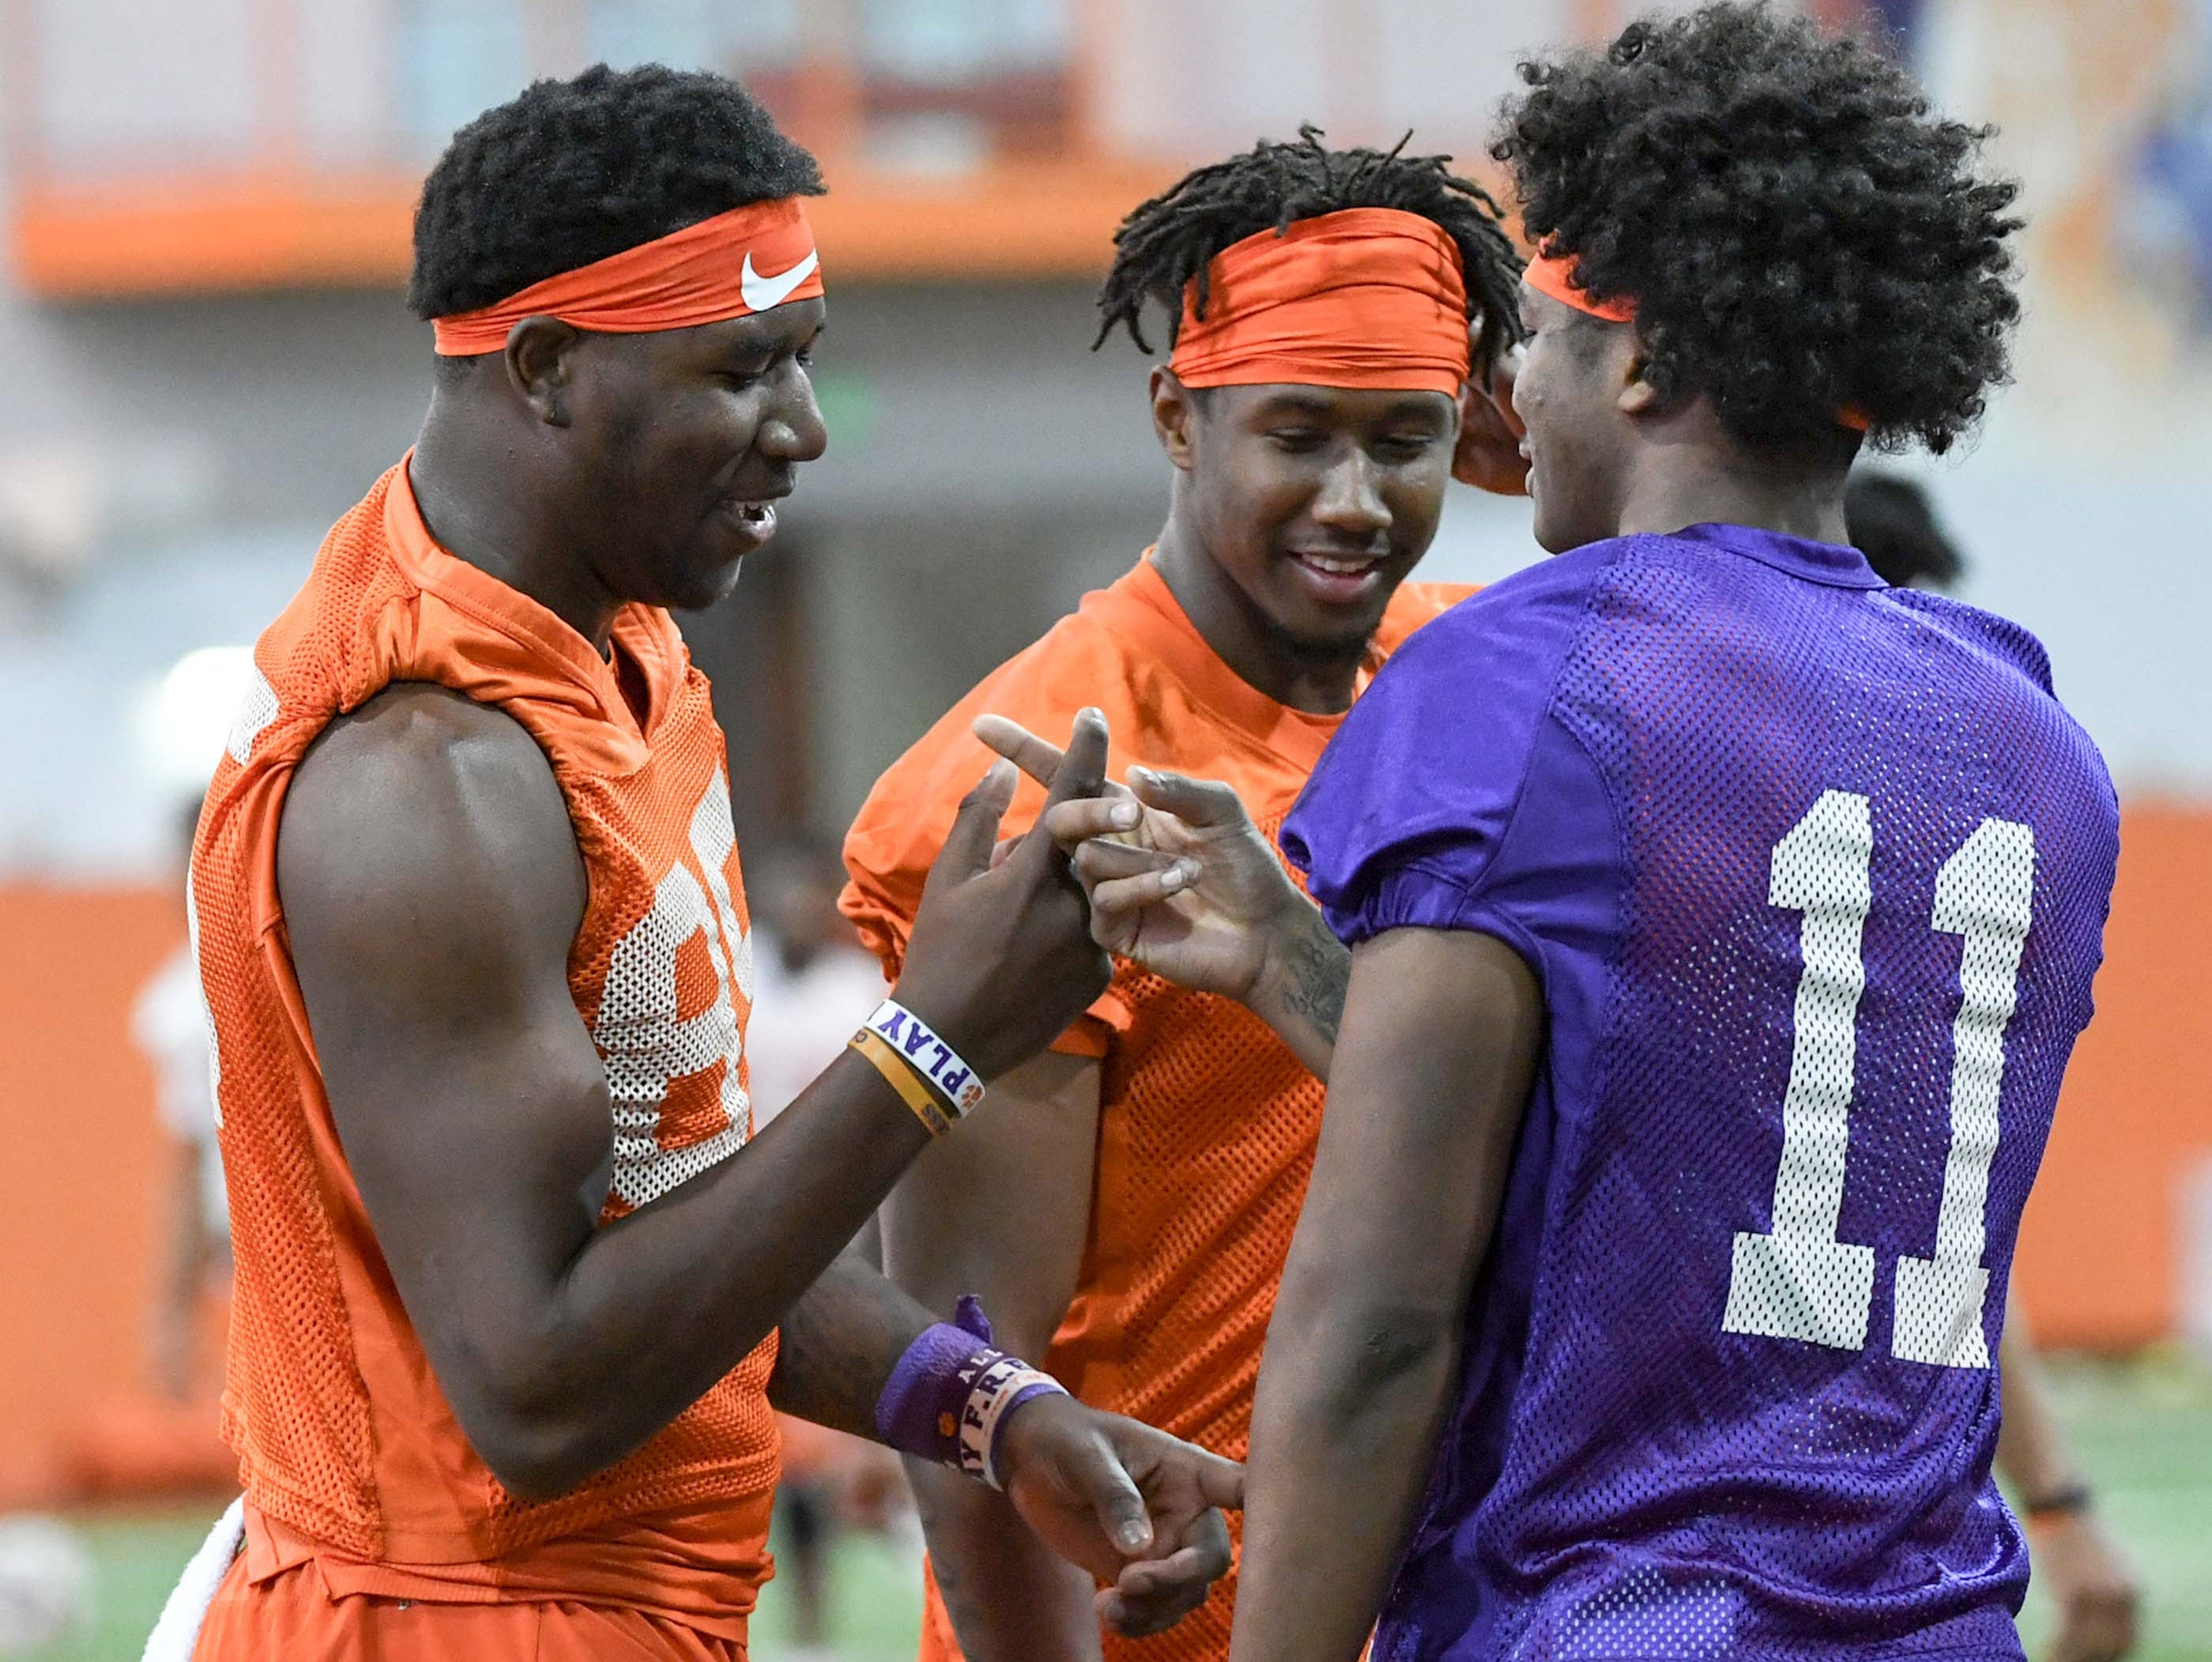 Clemson tight end Jaelyn Lay (85), left, wide receiver Frank Ladson, Jr. (2), and quarterback Taisun Phommachanh(11) greet each other before stretching during practice at the Poe Indoor Facility in Clemson Friday.